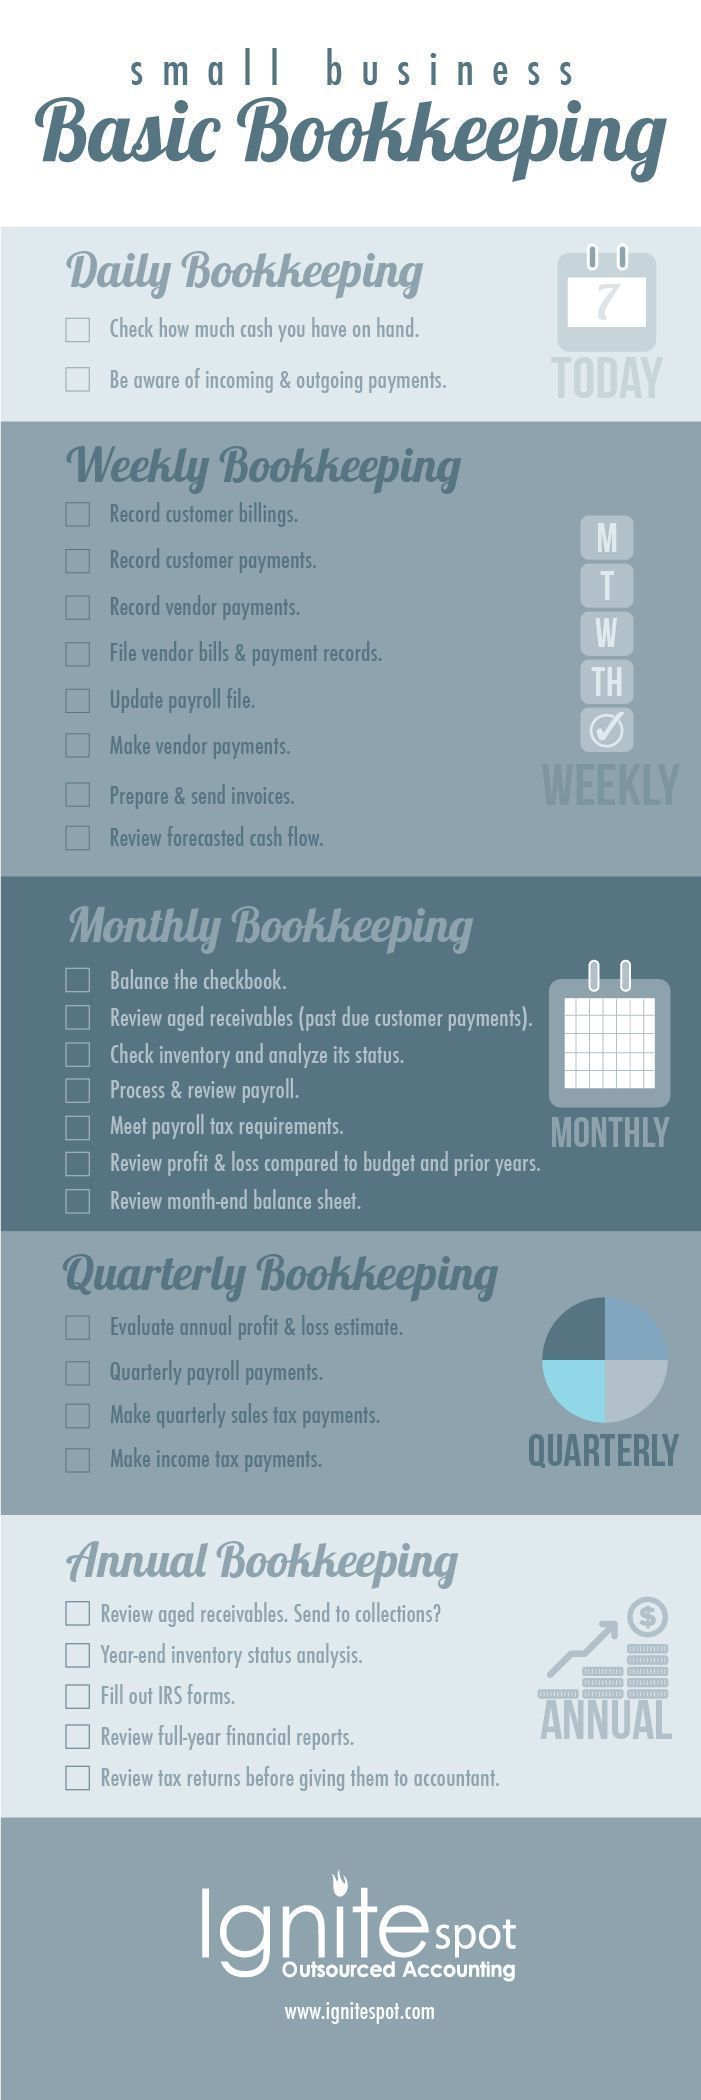 Very helpful for other creative entrepreneurs wanting to tackle the never ending chore that is finances!